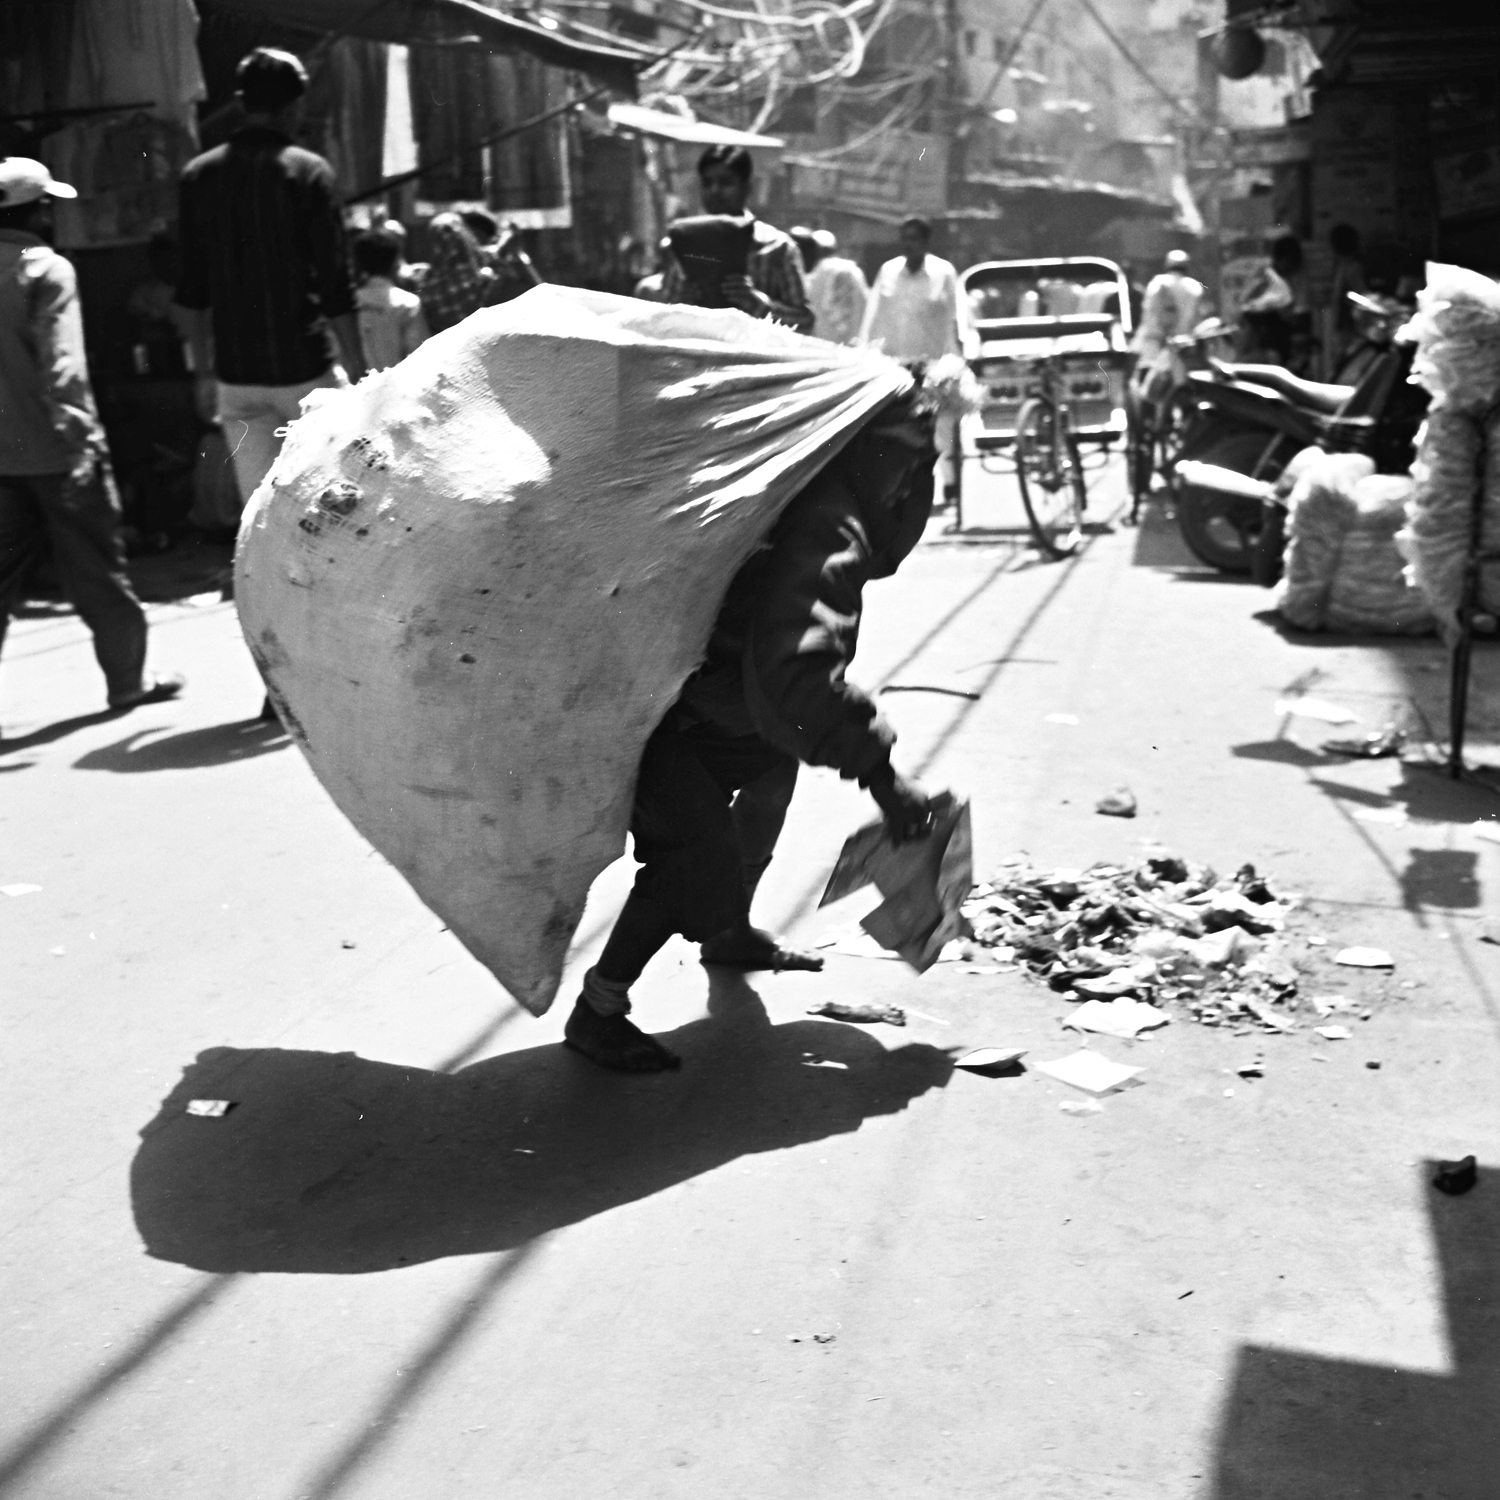 Heavy-Bag-Street-Picture-India.jpg